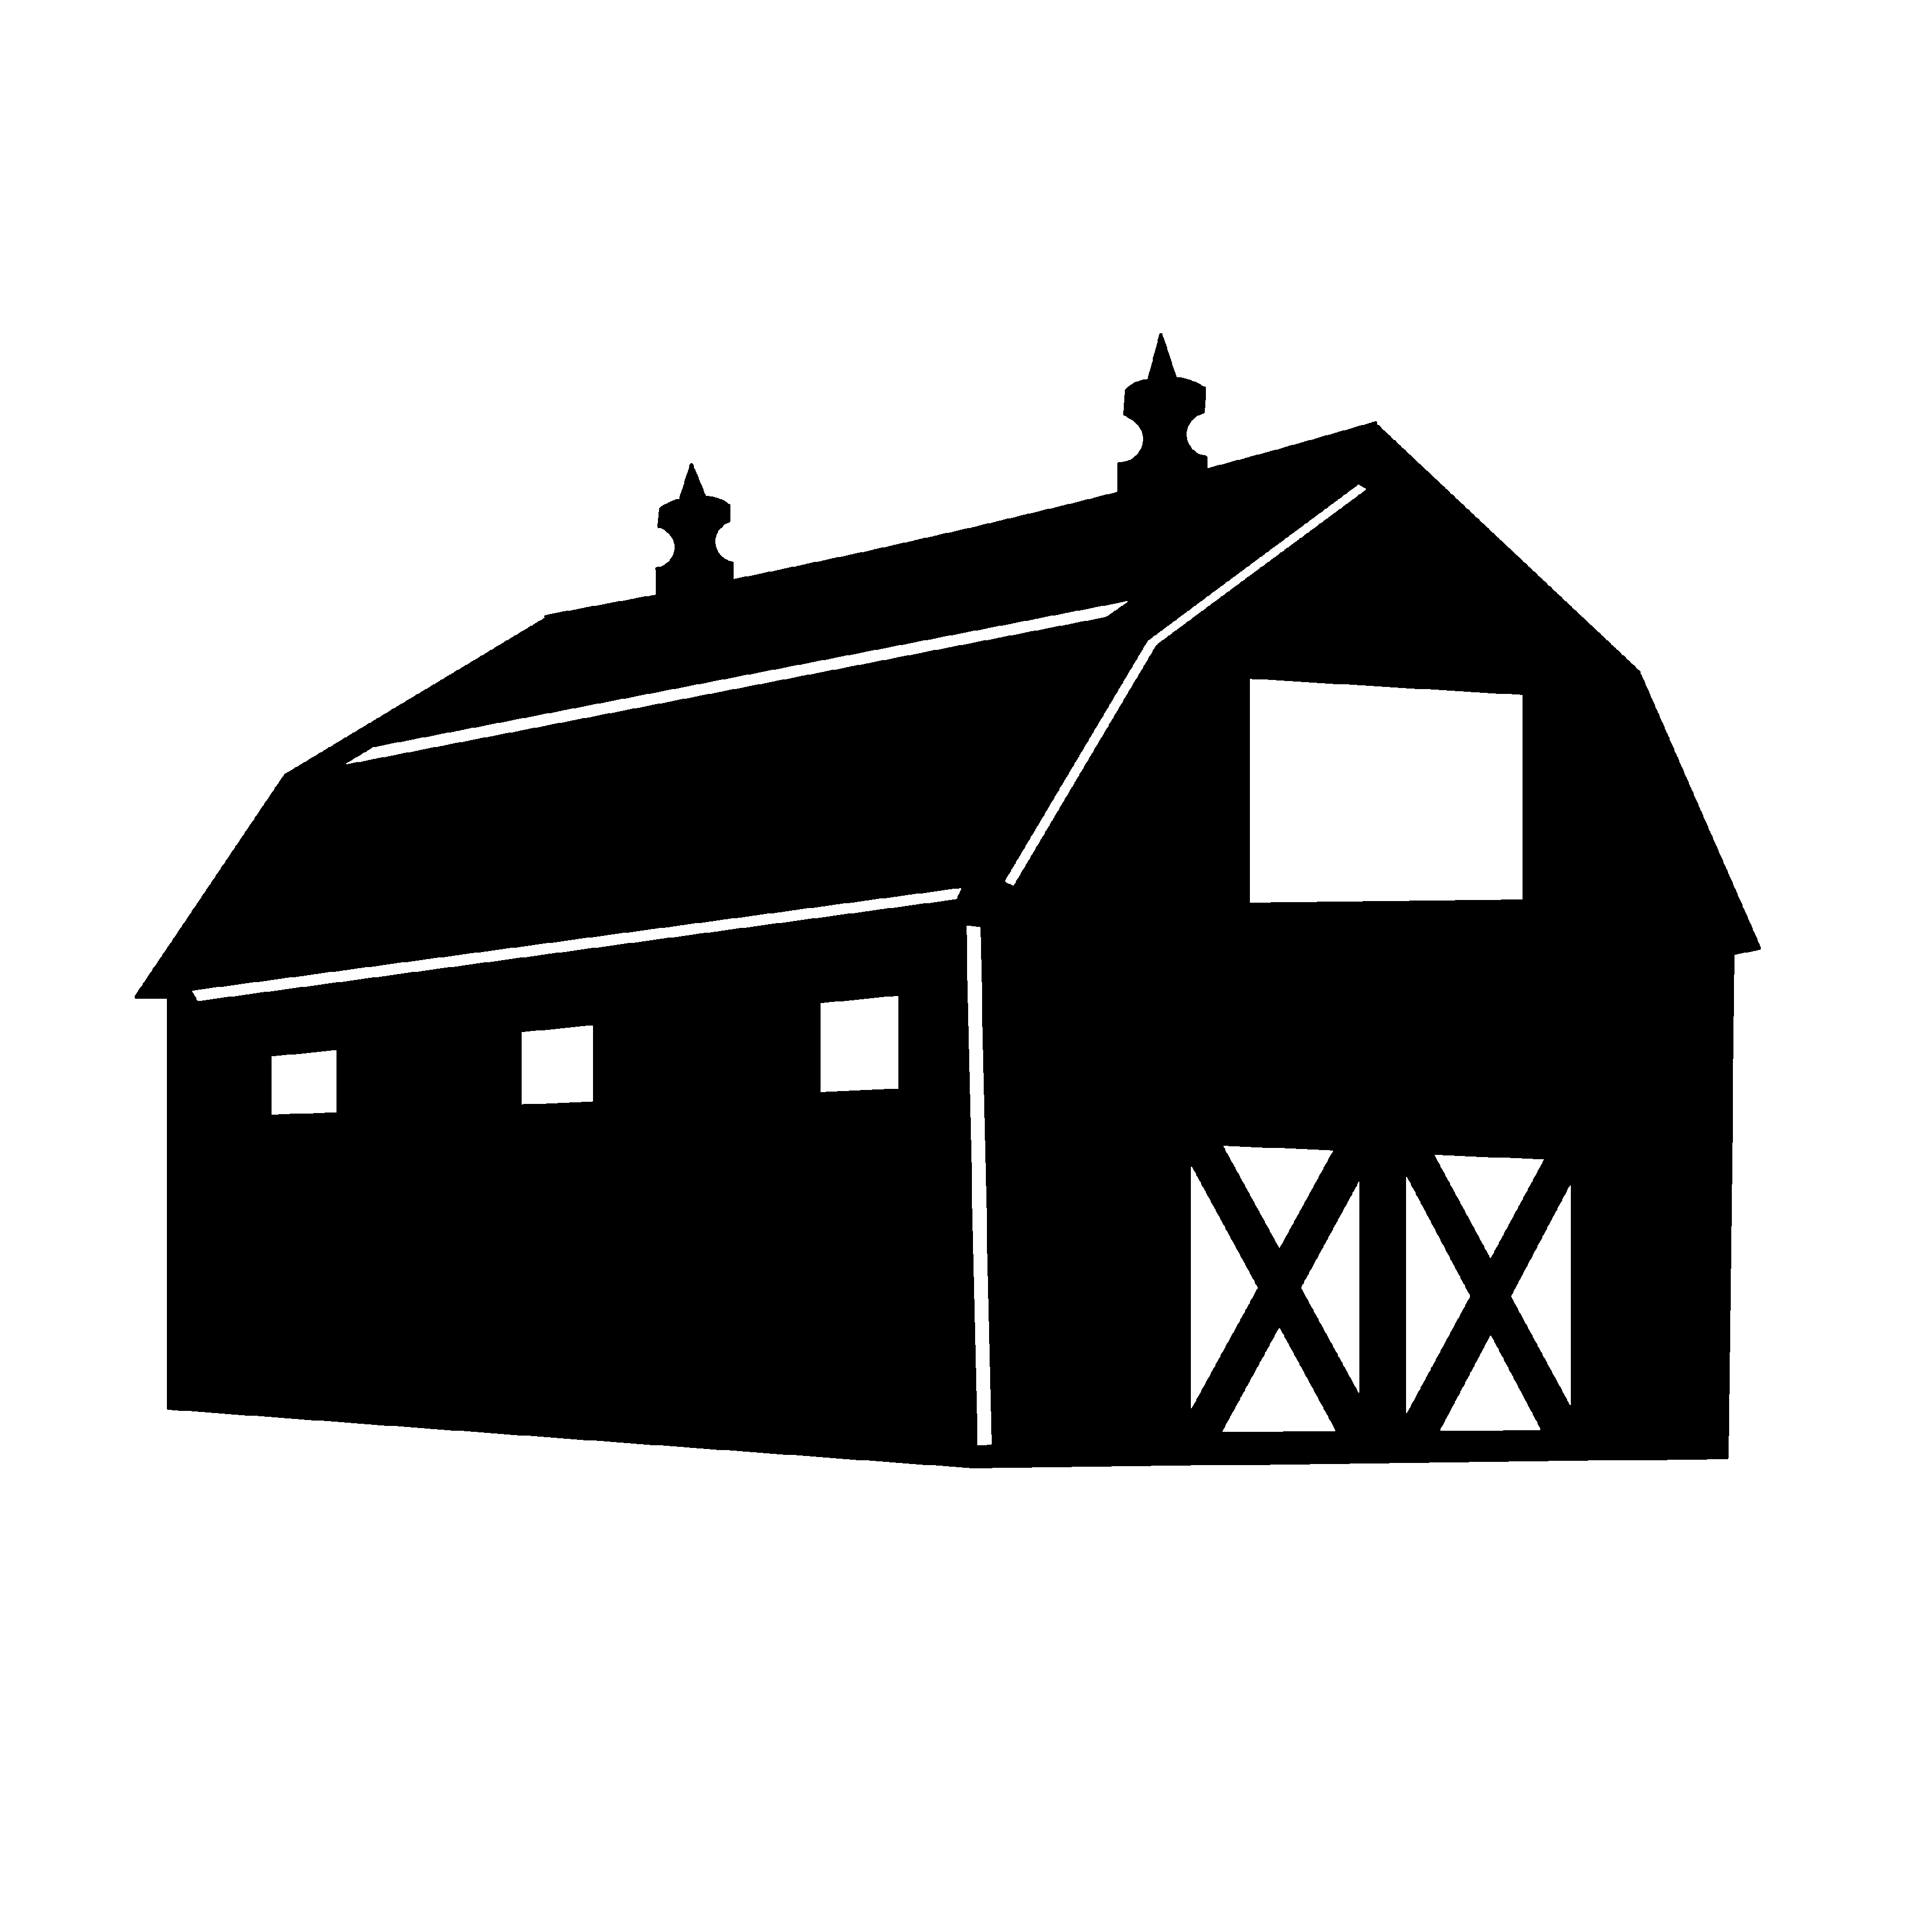 3600x3600 Tasty Barn Silhouette Clip Art Clipart Simple Pencil And In Color